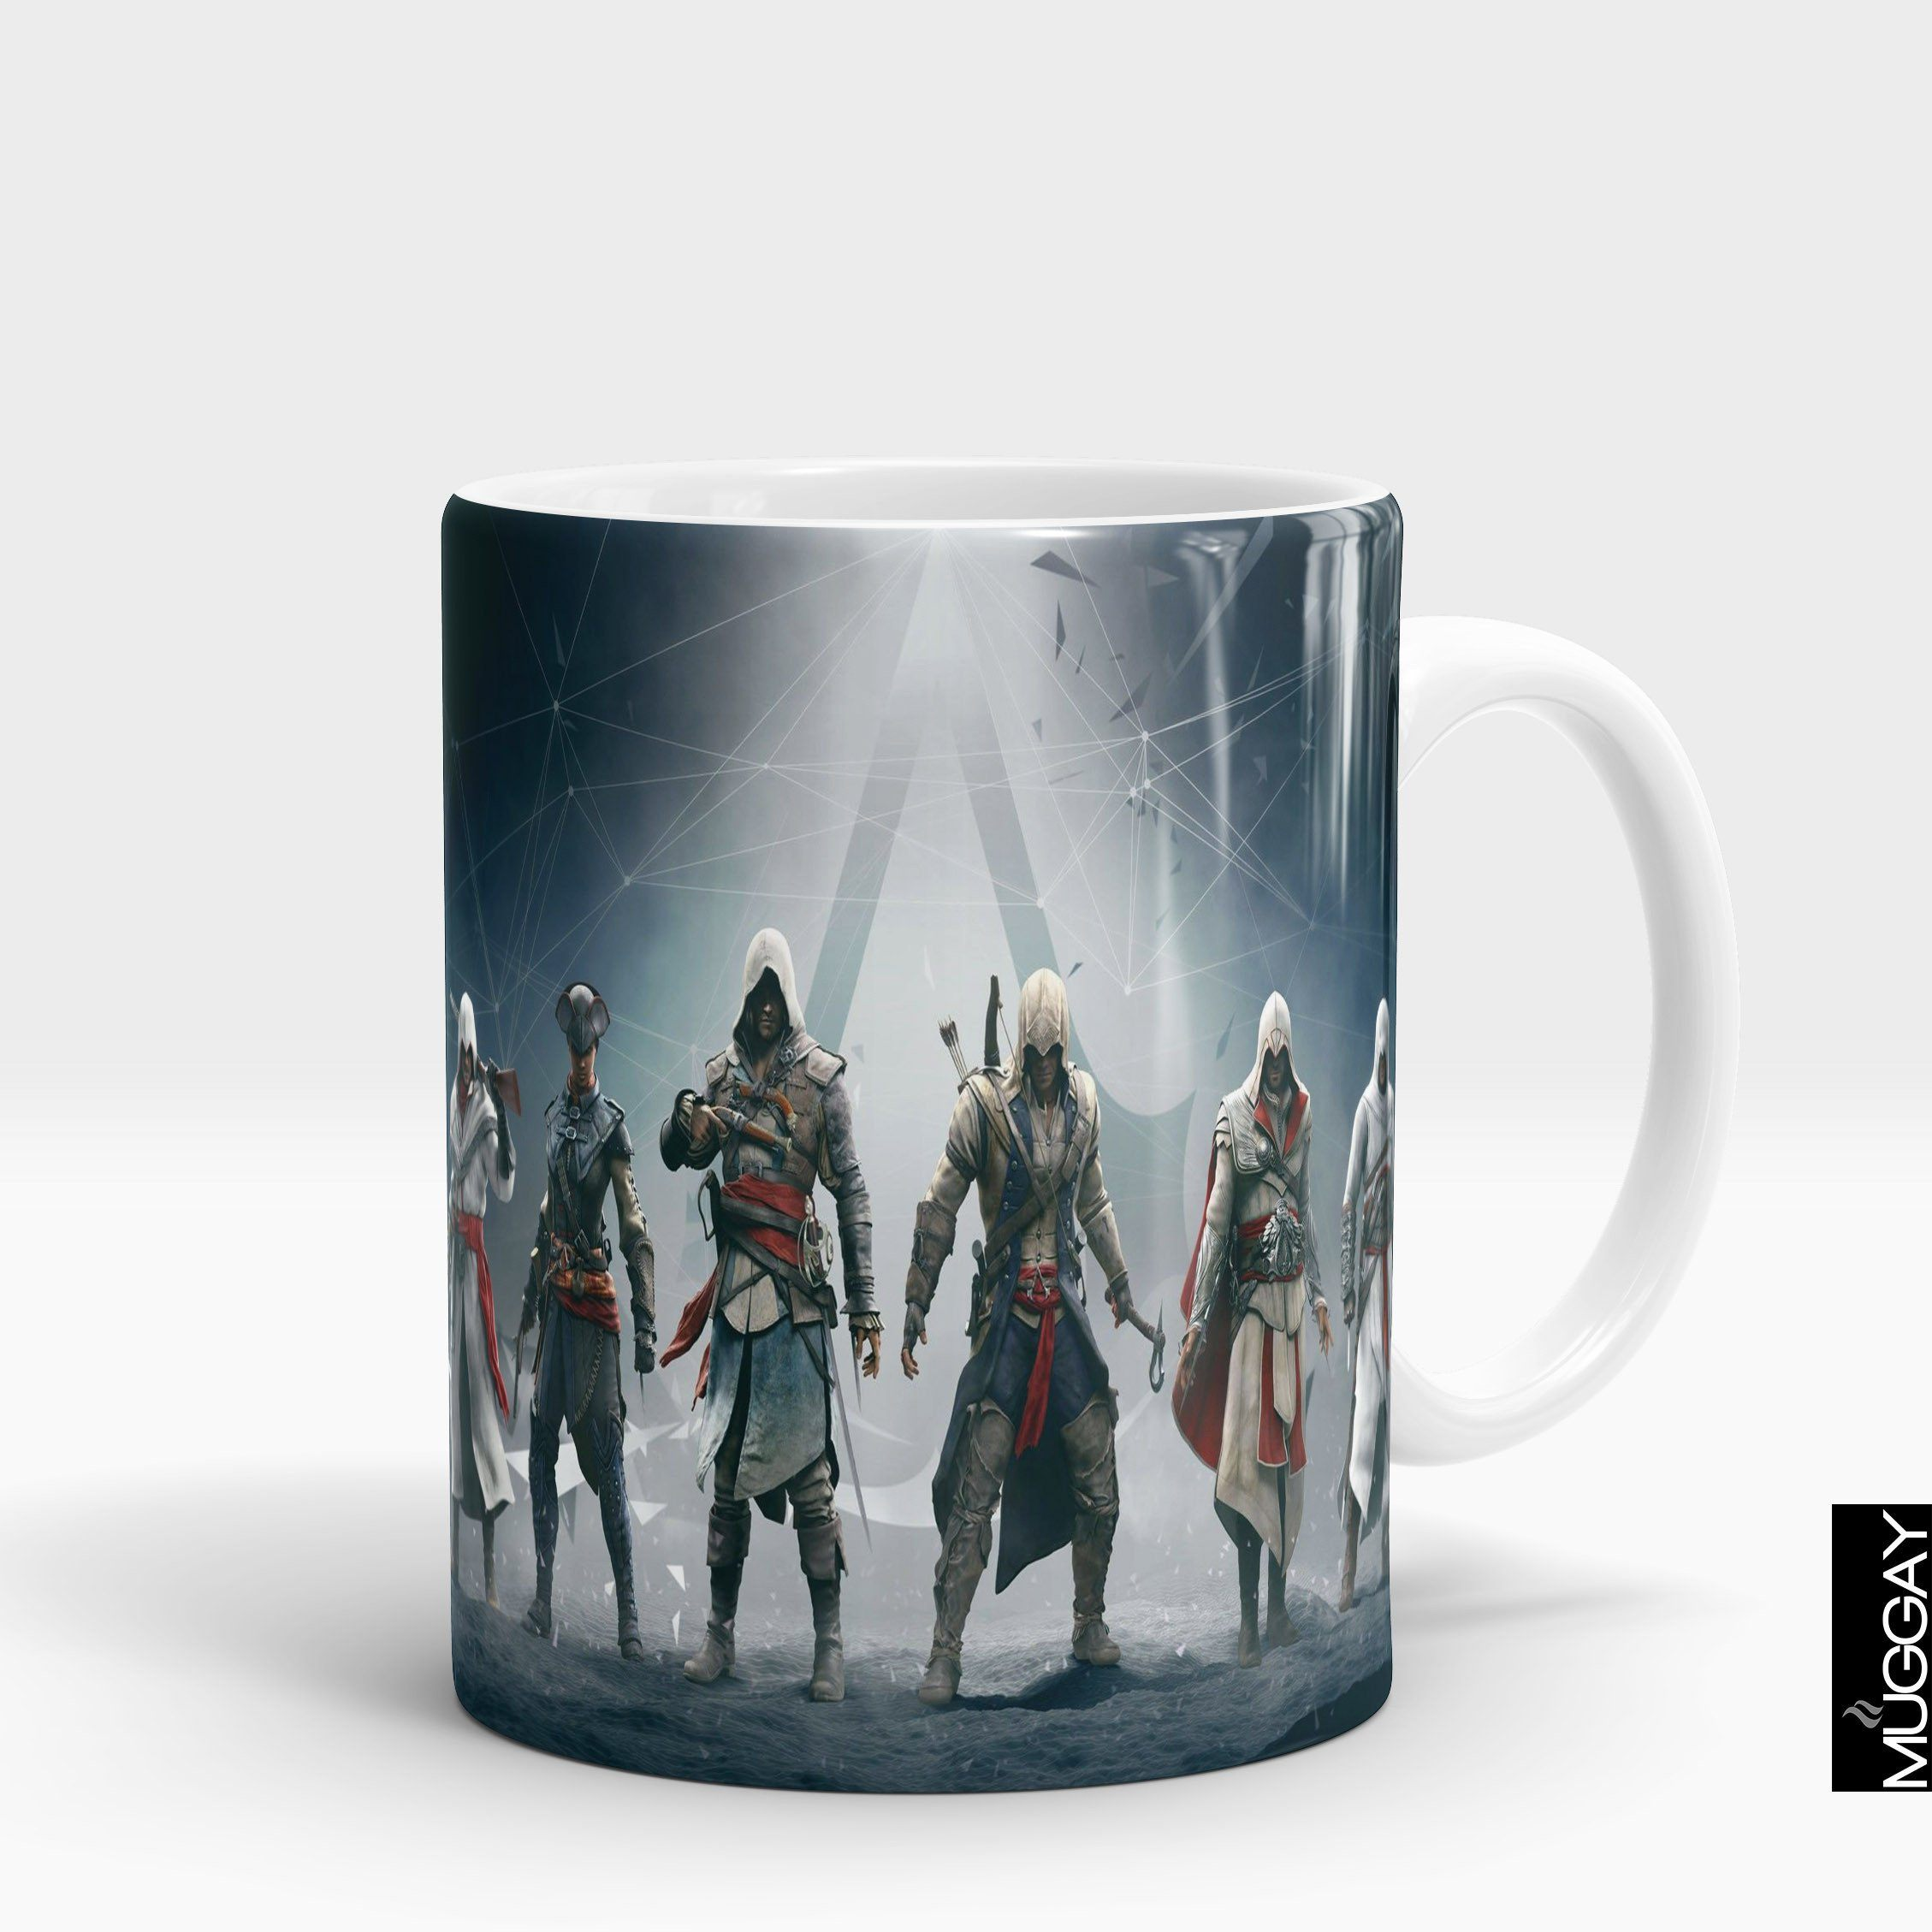 Assasins creed mugs - ac2 Assassins Creed Muggay.com white